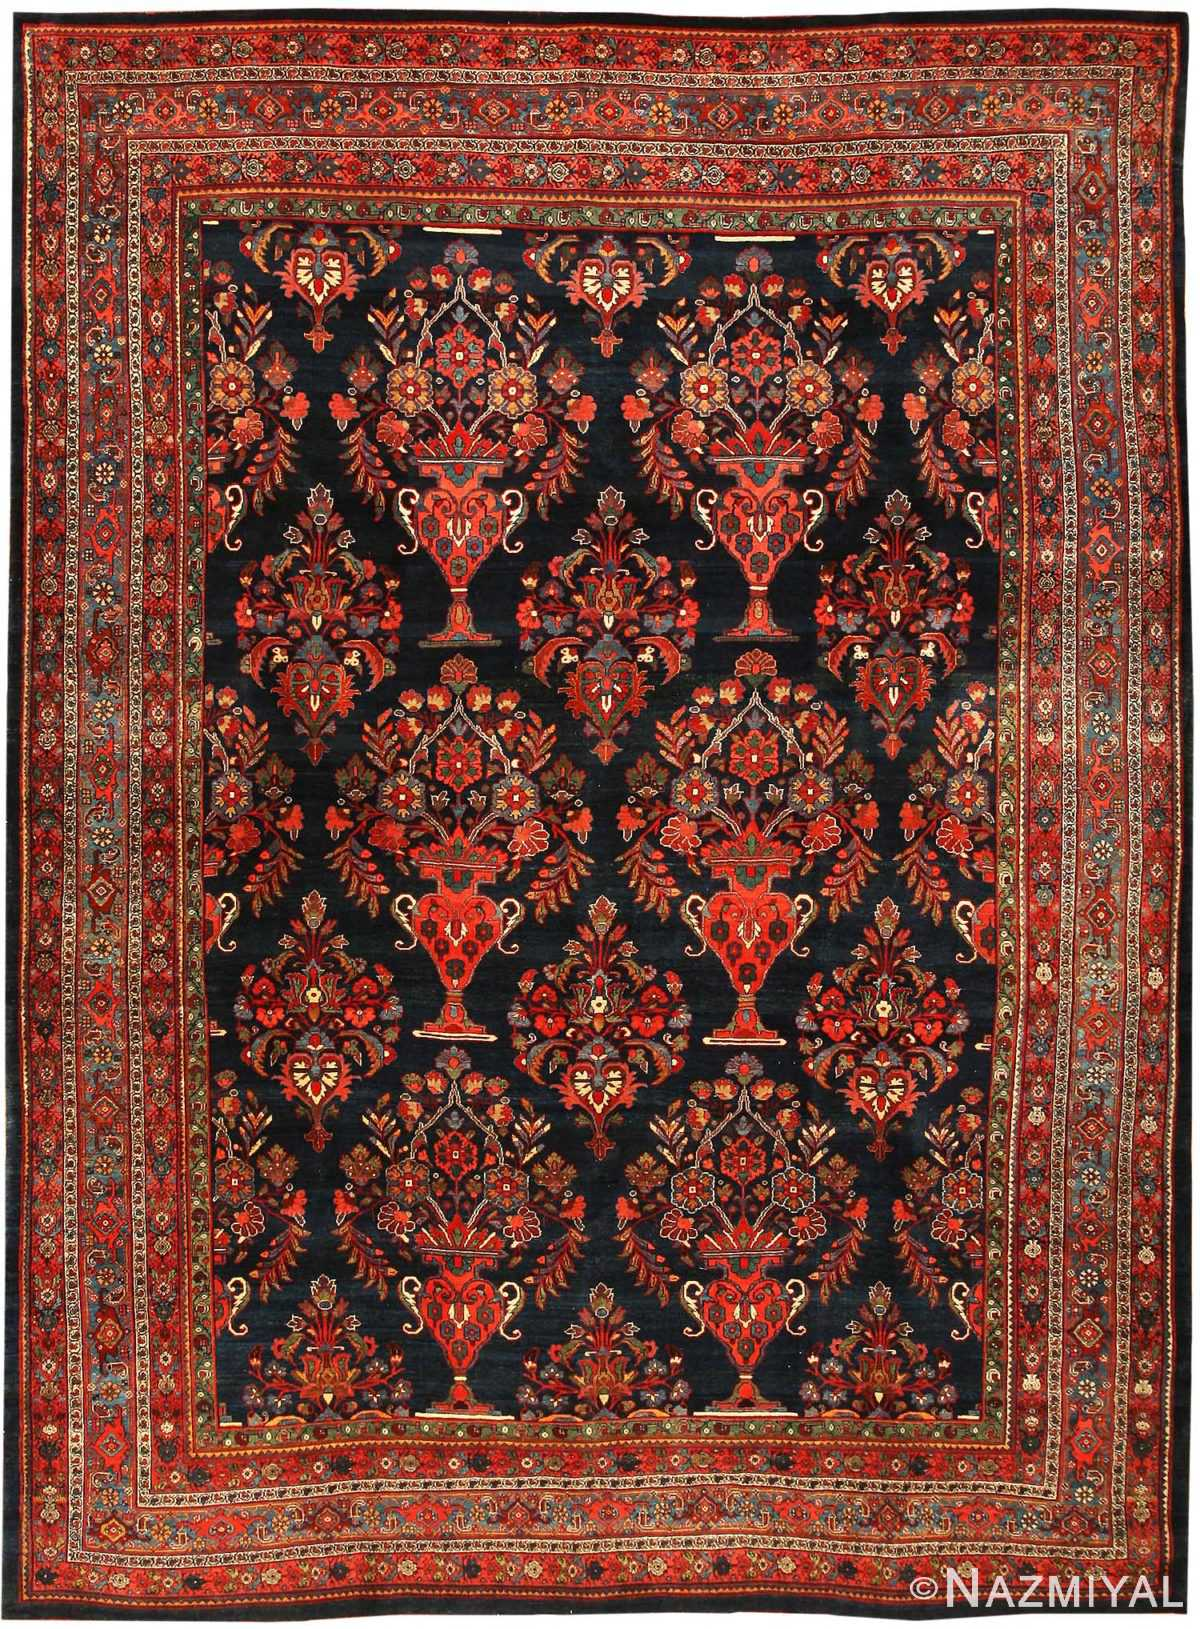 Antique & Collectible Rugs: Books